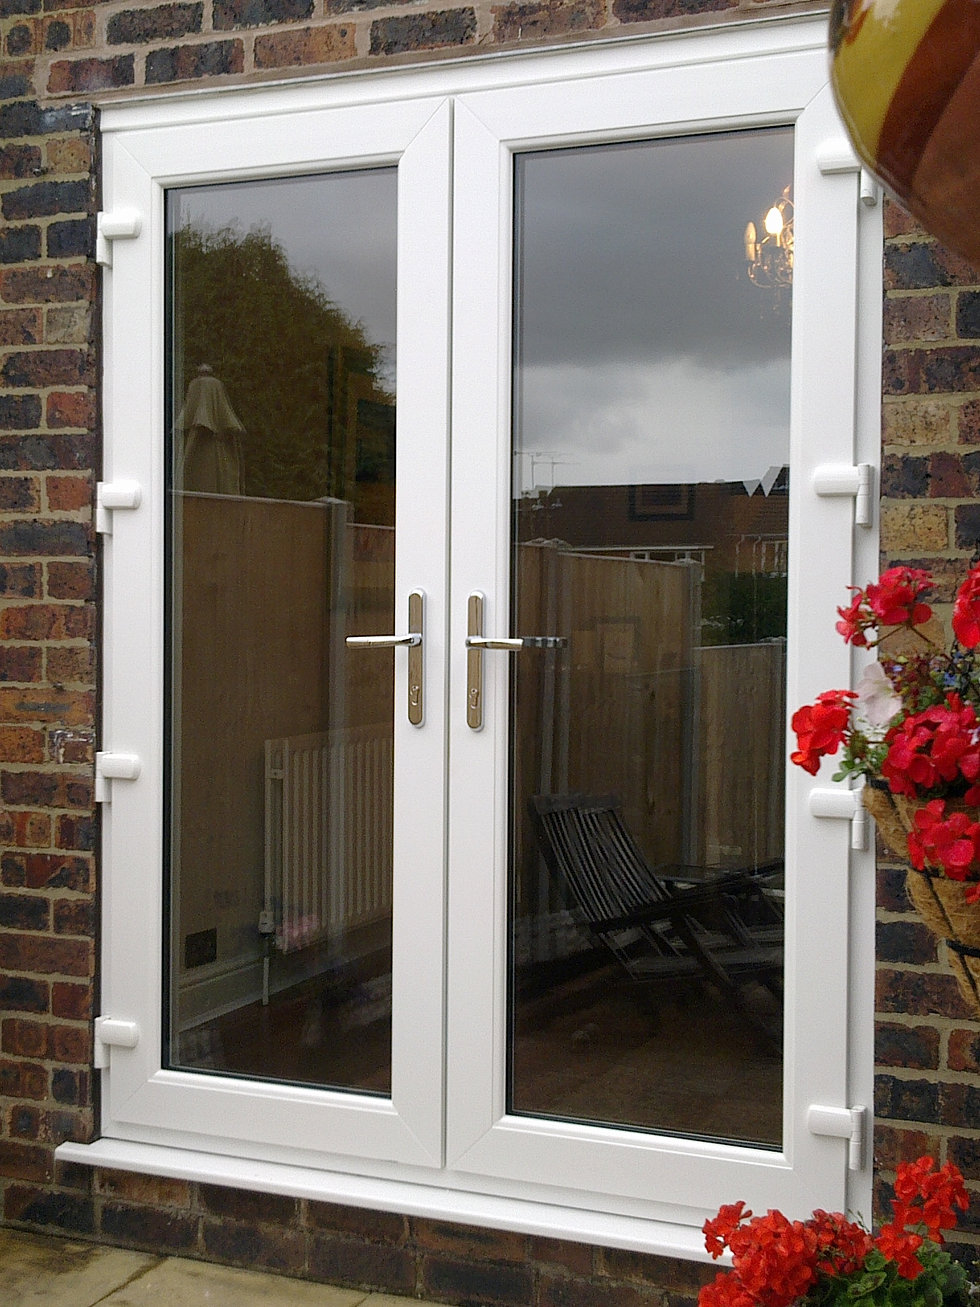 Window door repairs in stoke on trent local locksmith for Upvc french doors with cat flap